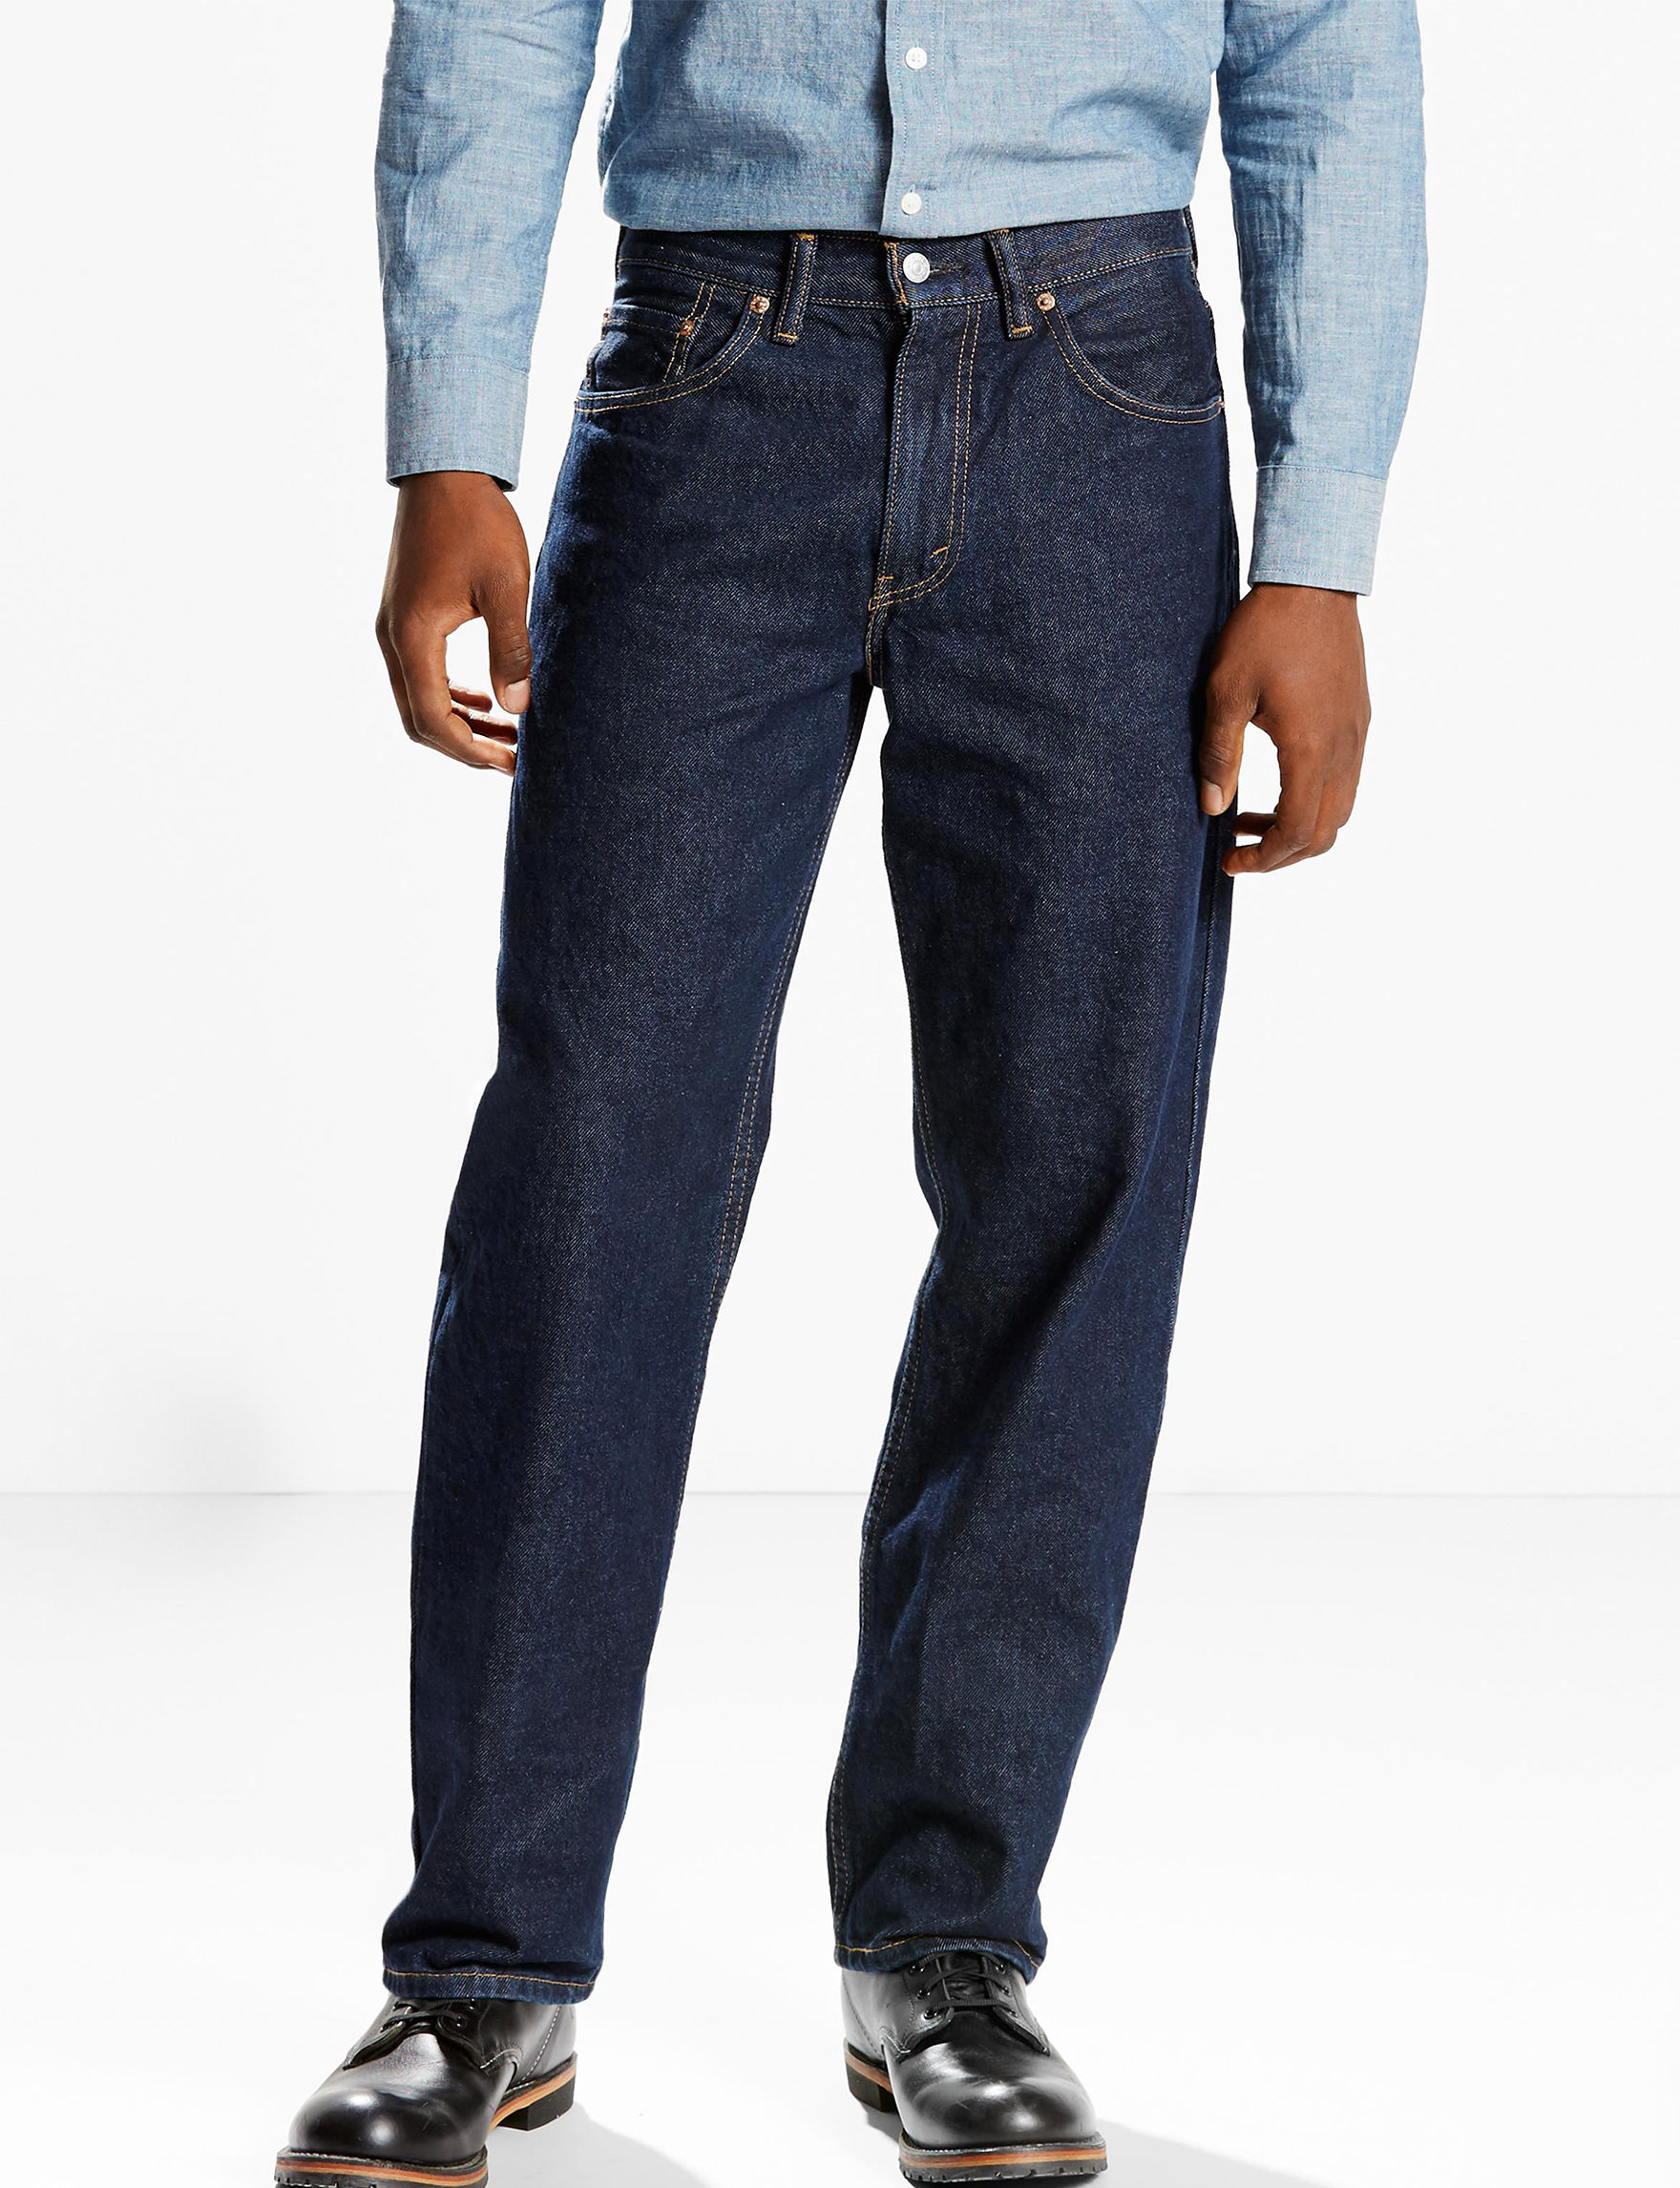 Levi's Dark Wash Relaxed